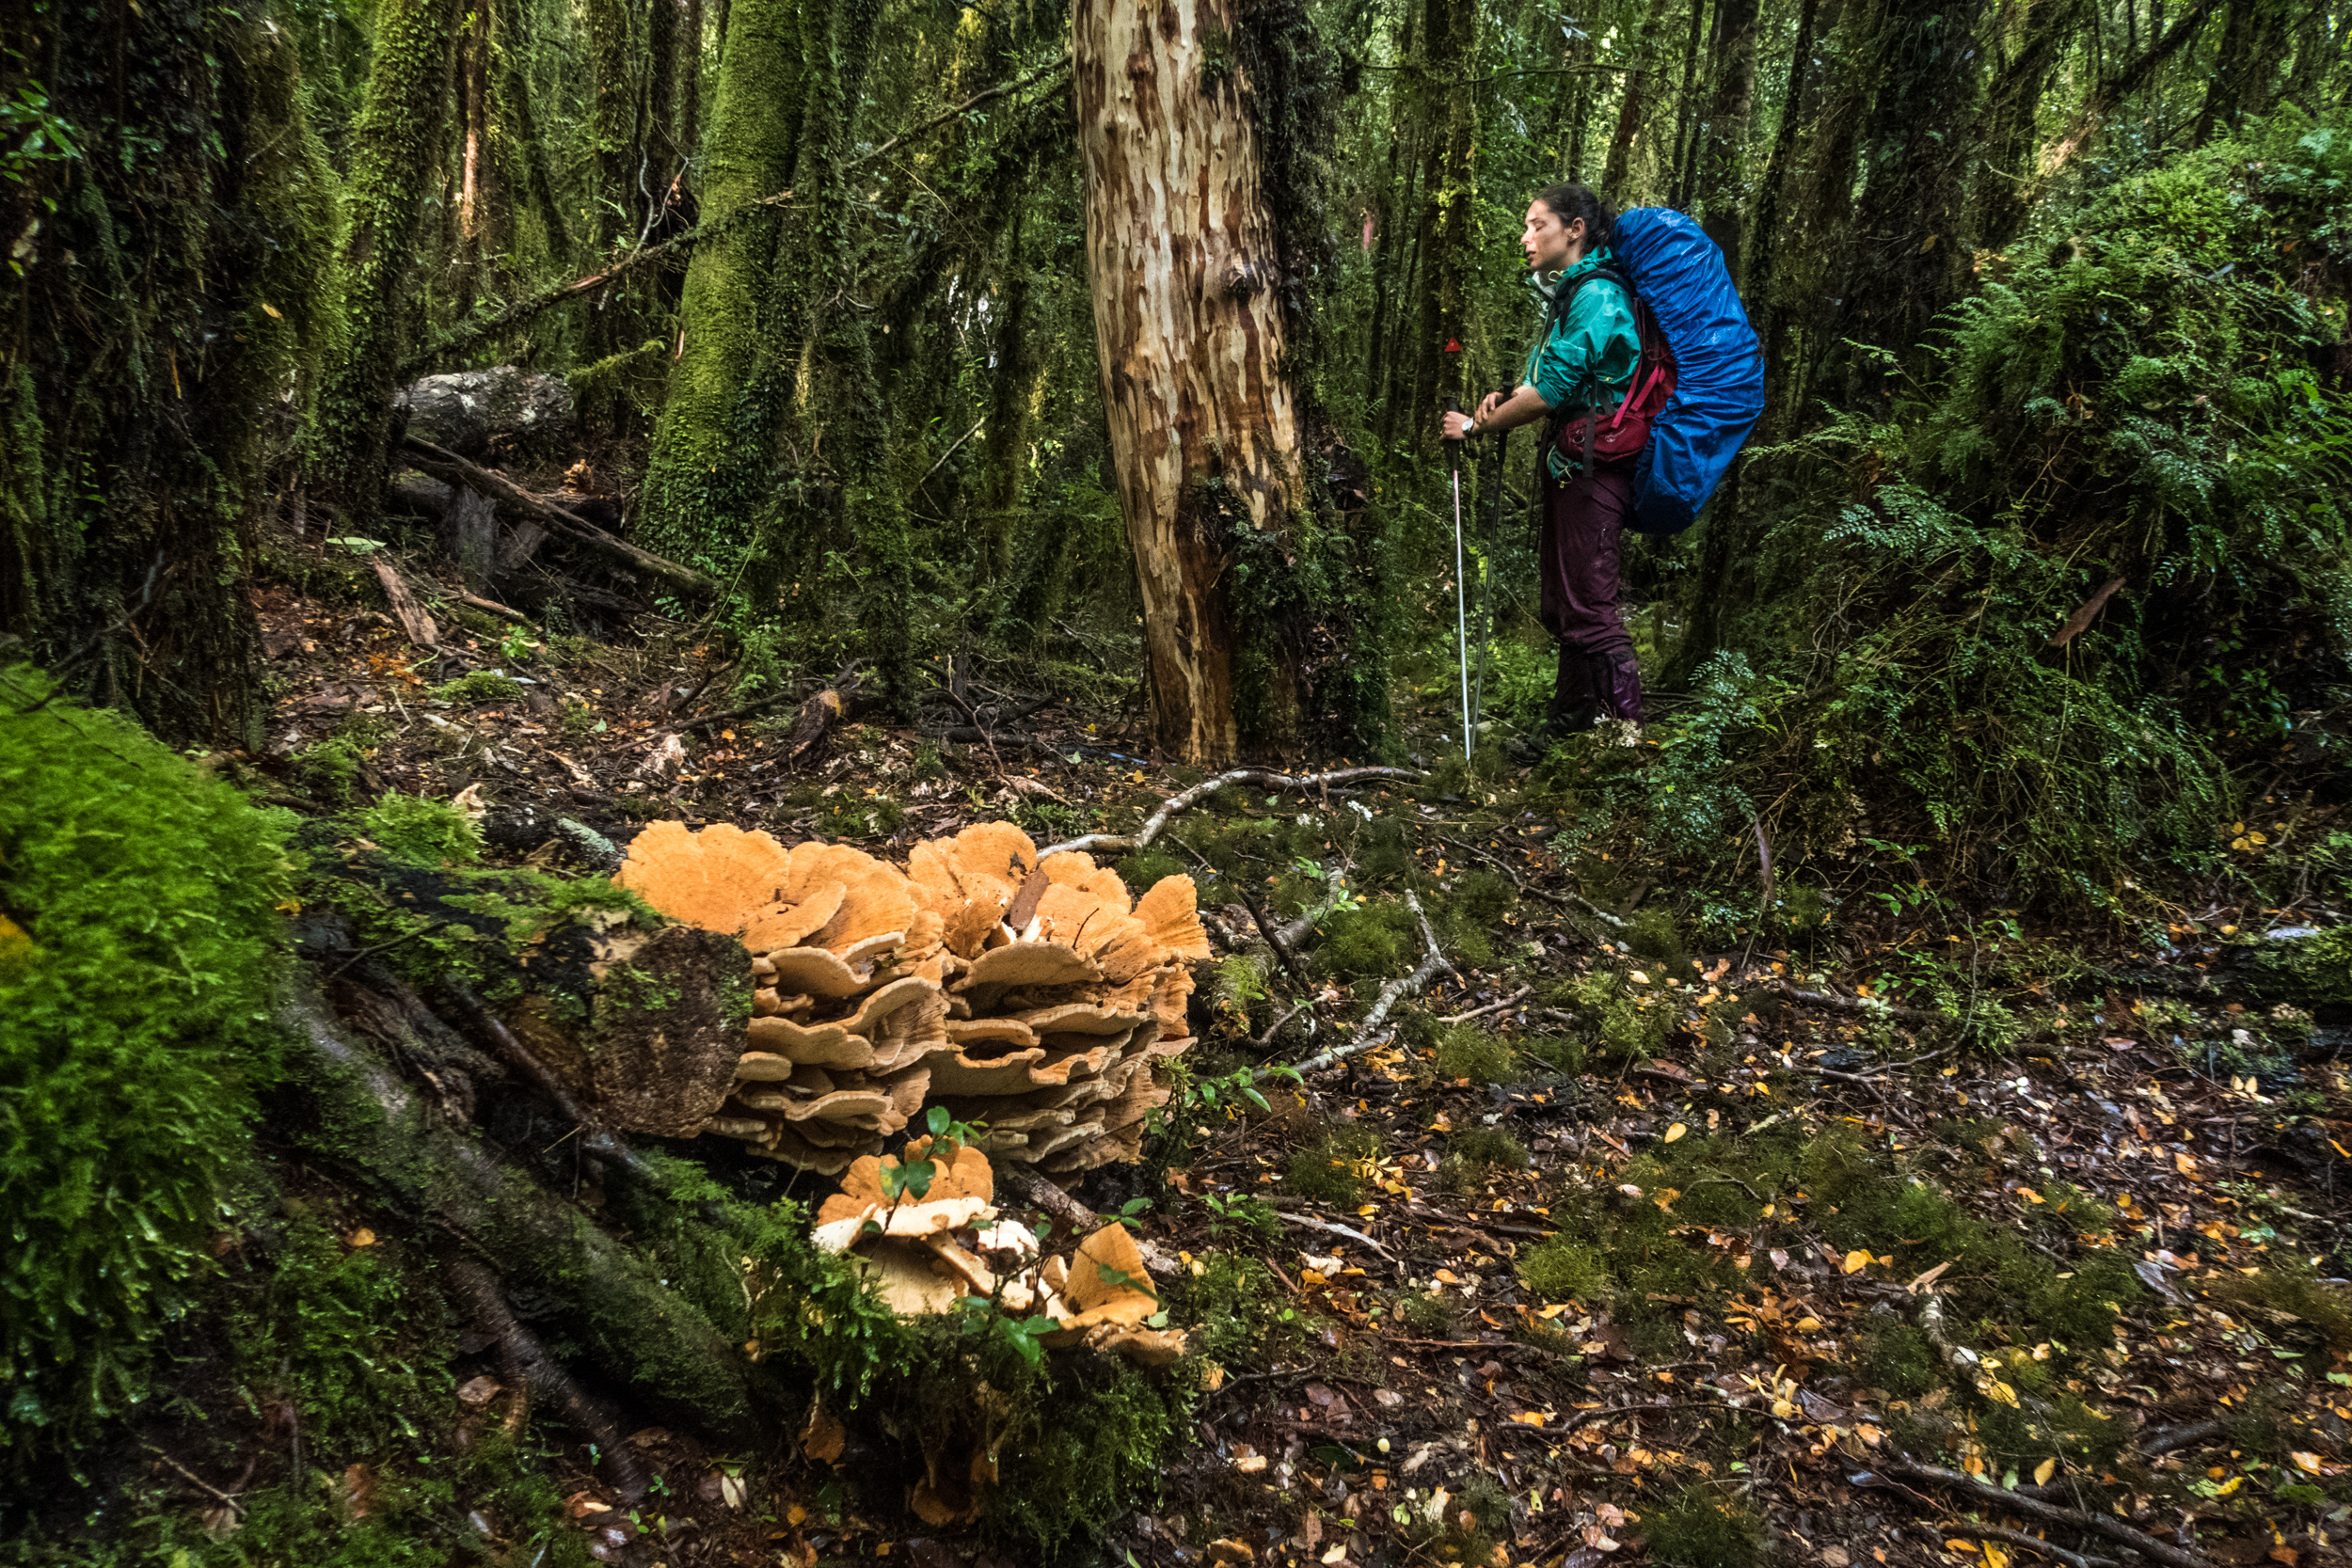 Lush vegetation and plenty of mushrooms in the old-growth forest section approaching Inio